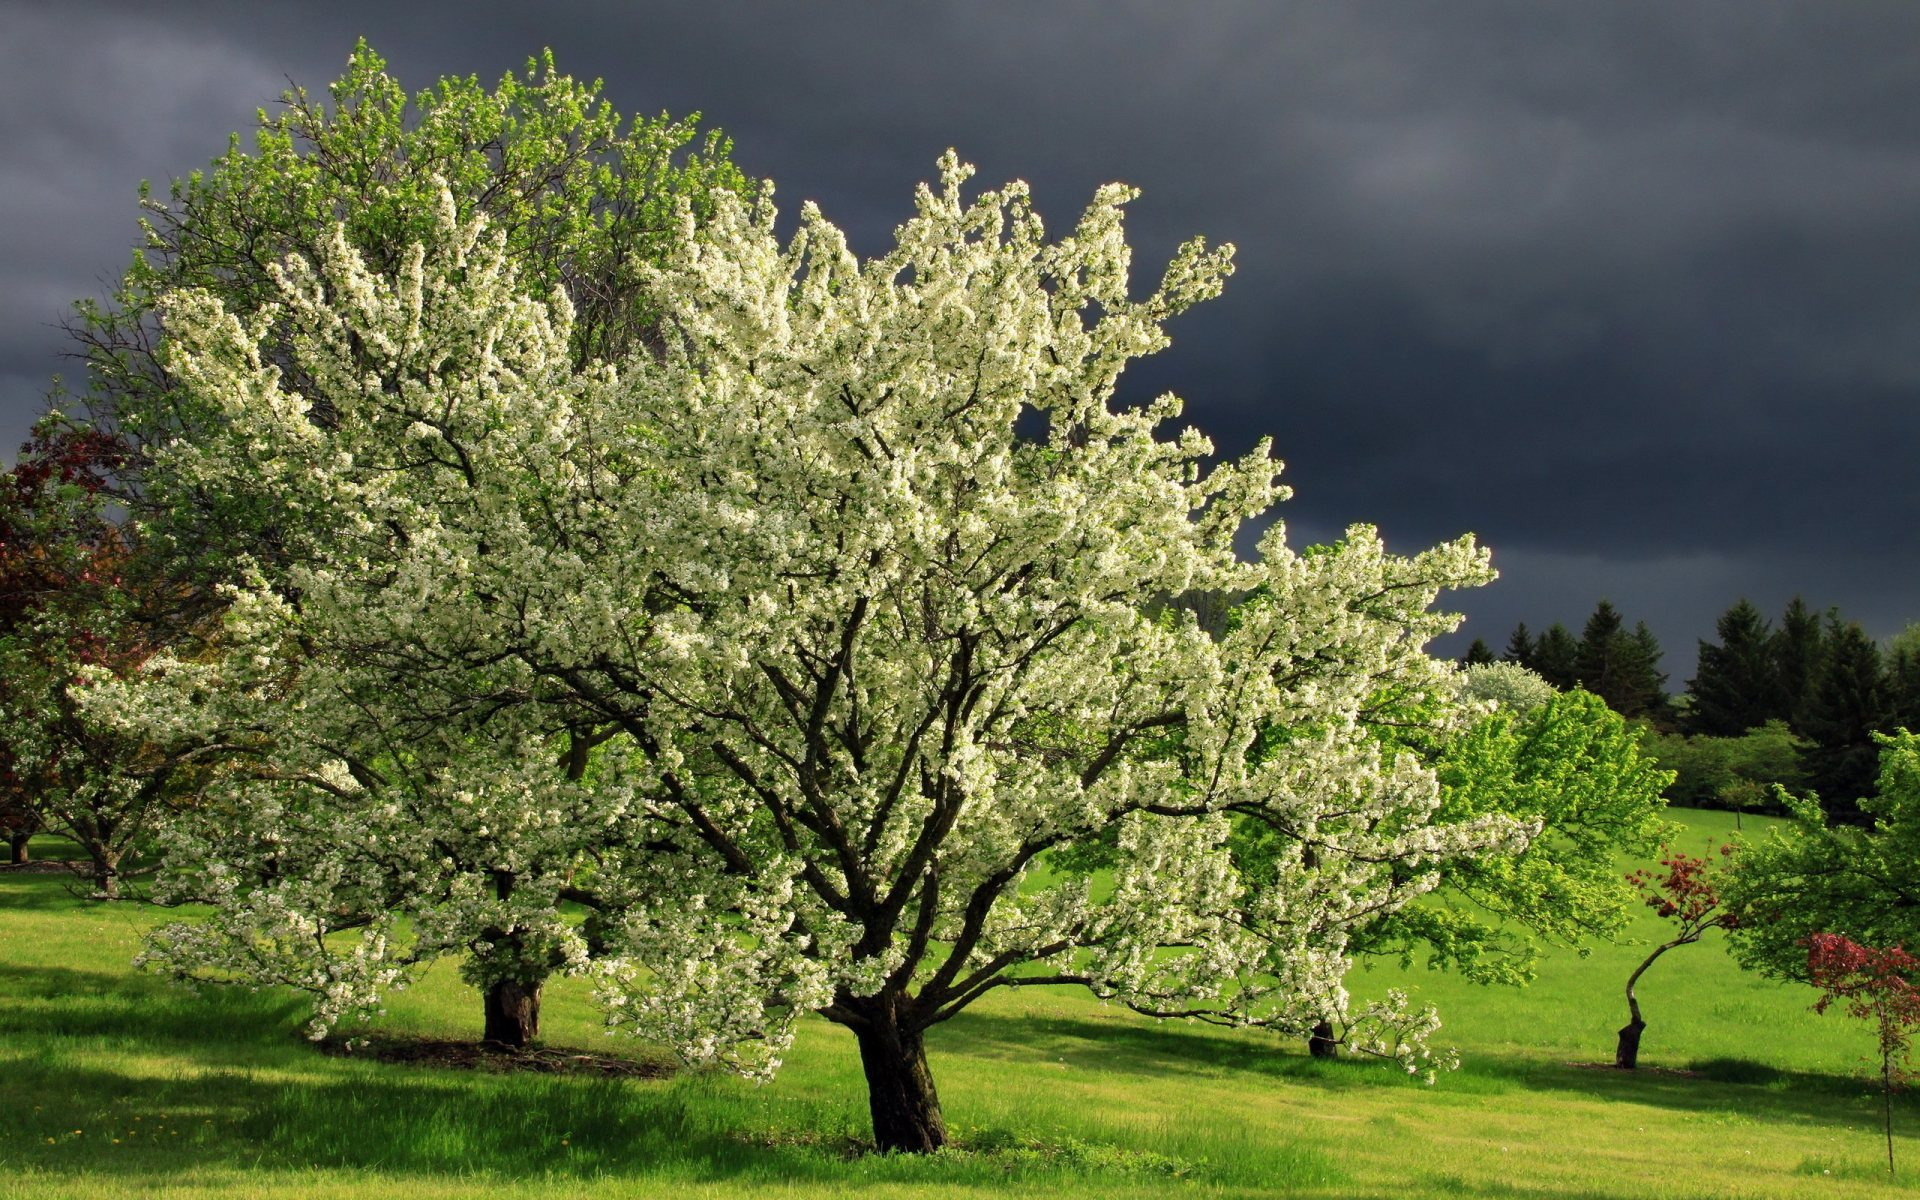 spring trees background - photo #15